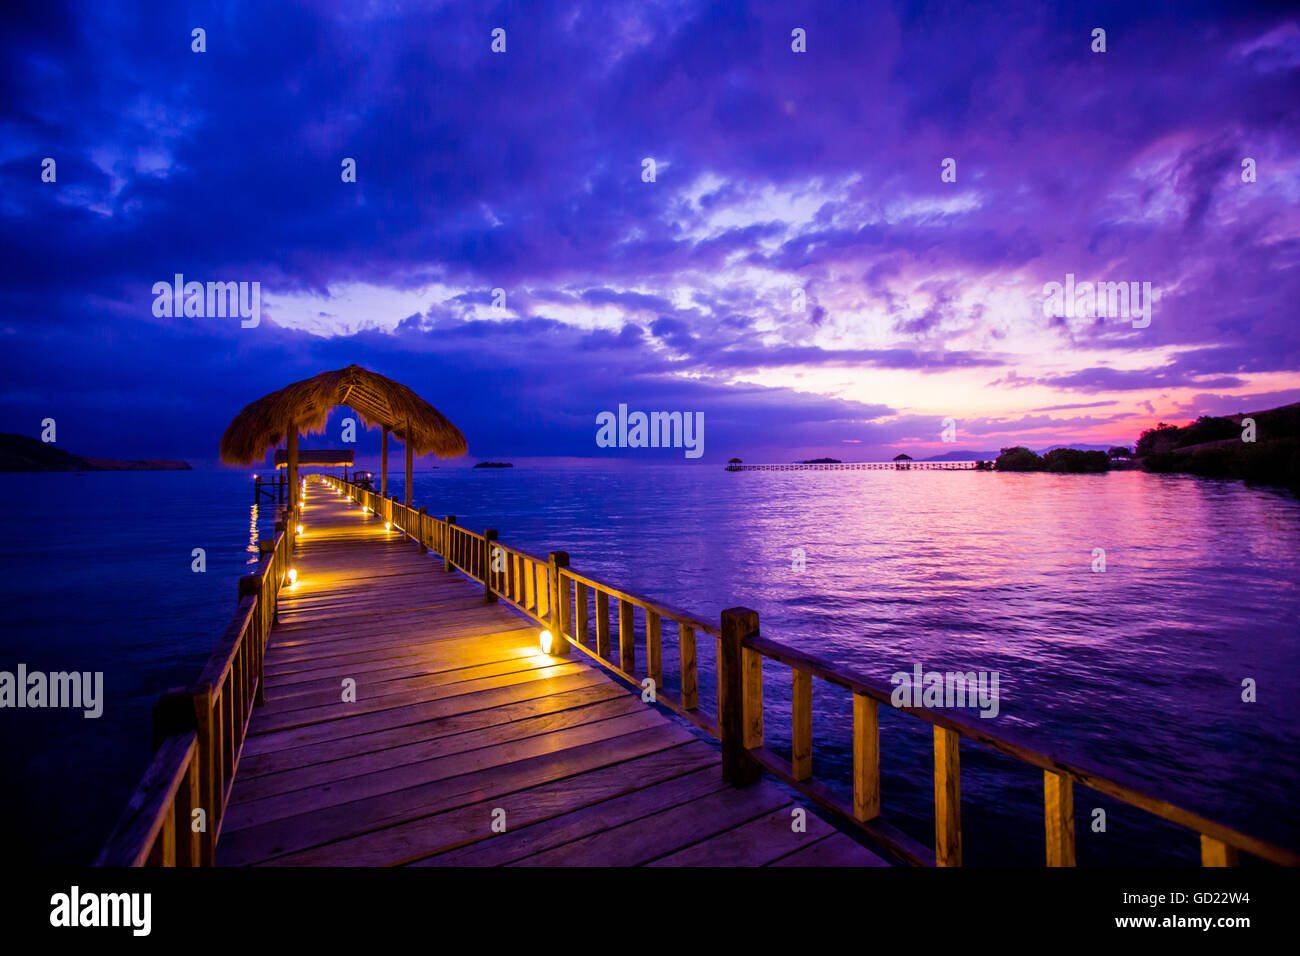 Sunset over the Pier, Hotel Seraya, Flores Island, Indonesia, Southeast Asia, Asia - Stock Image